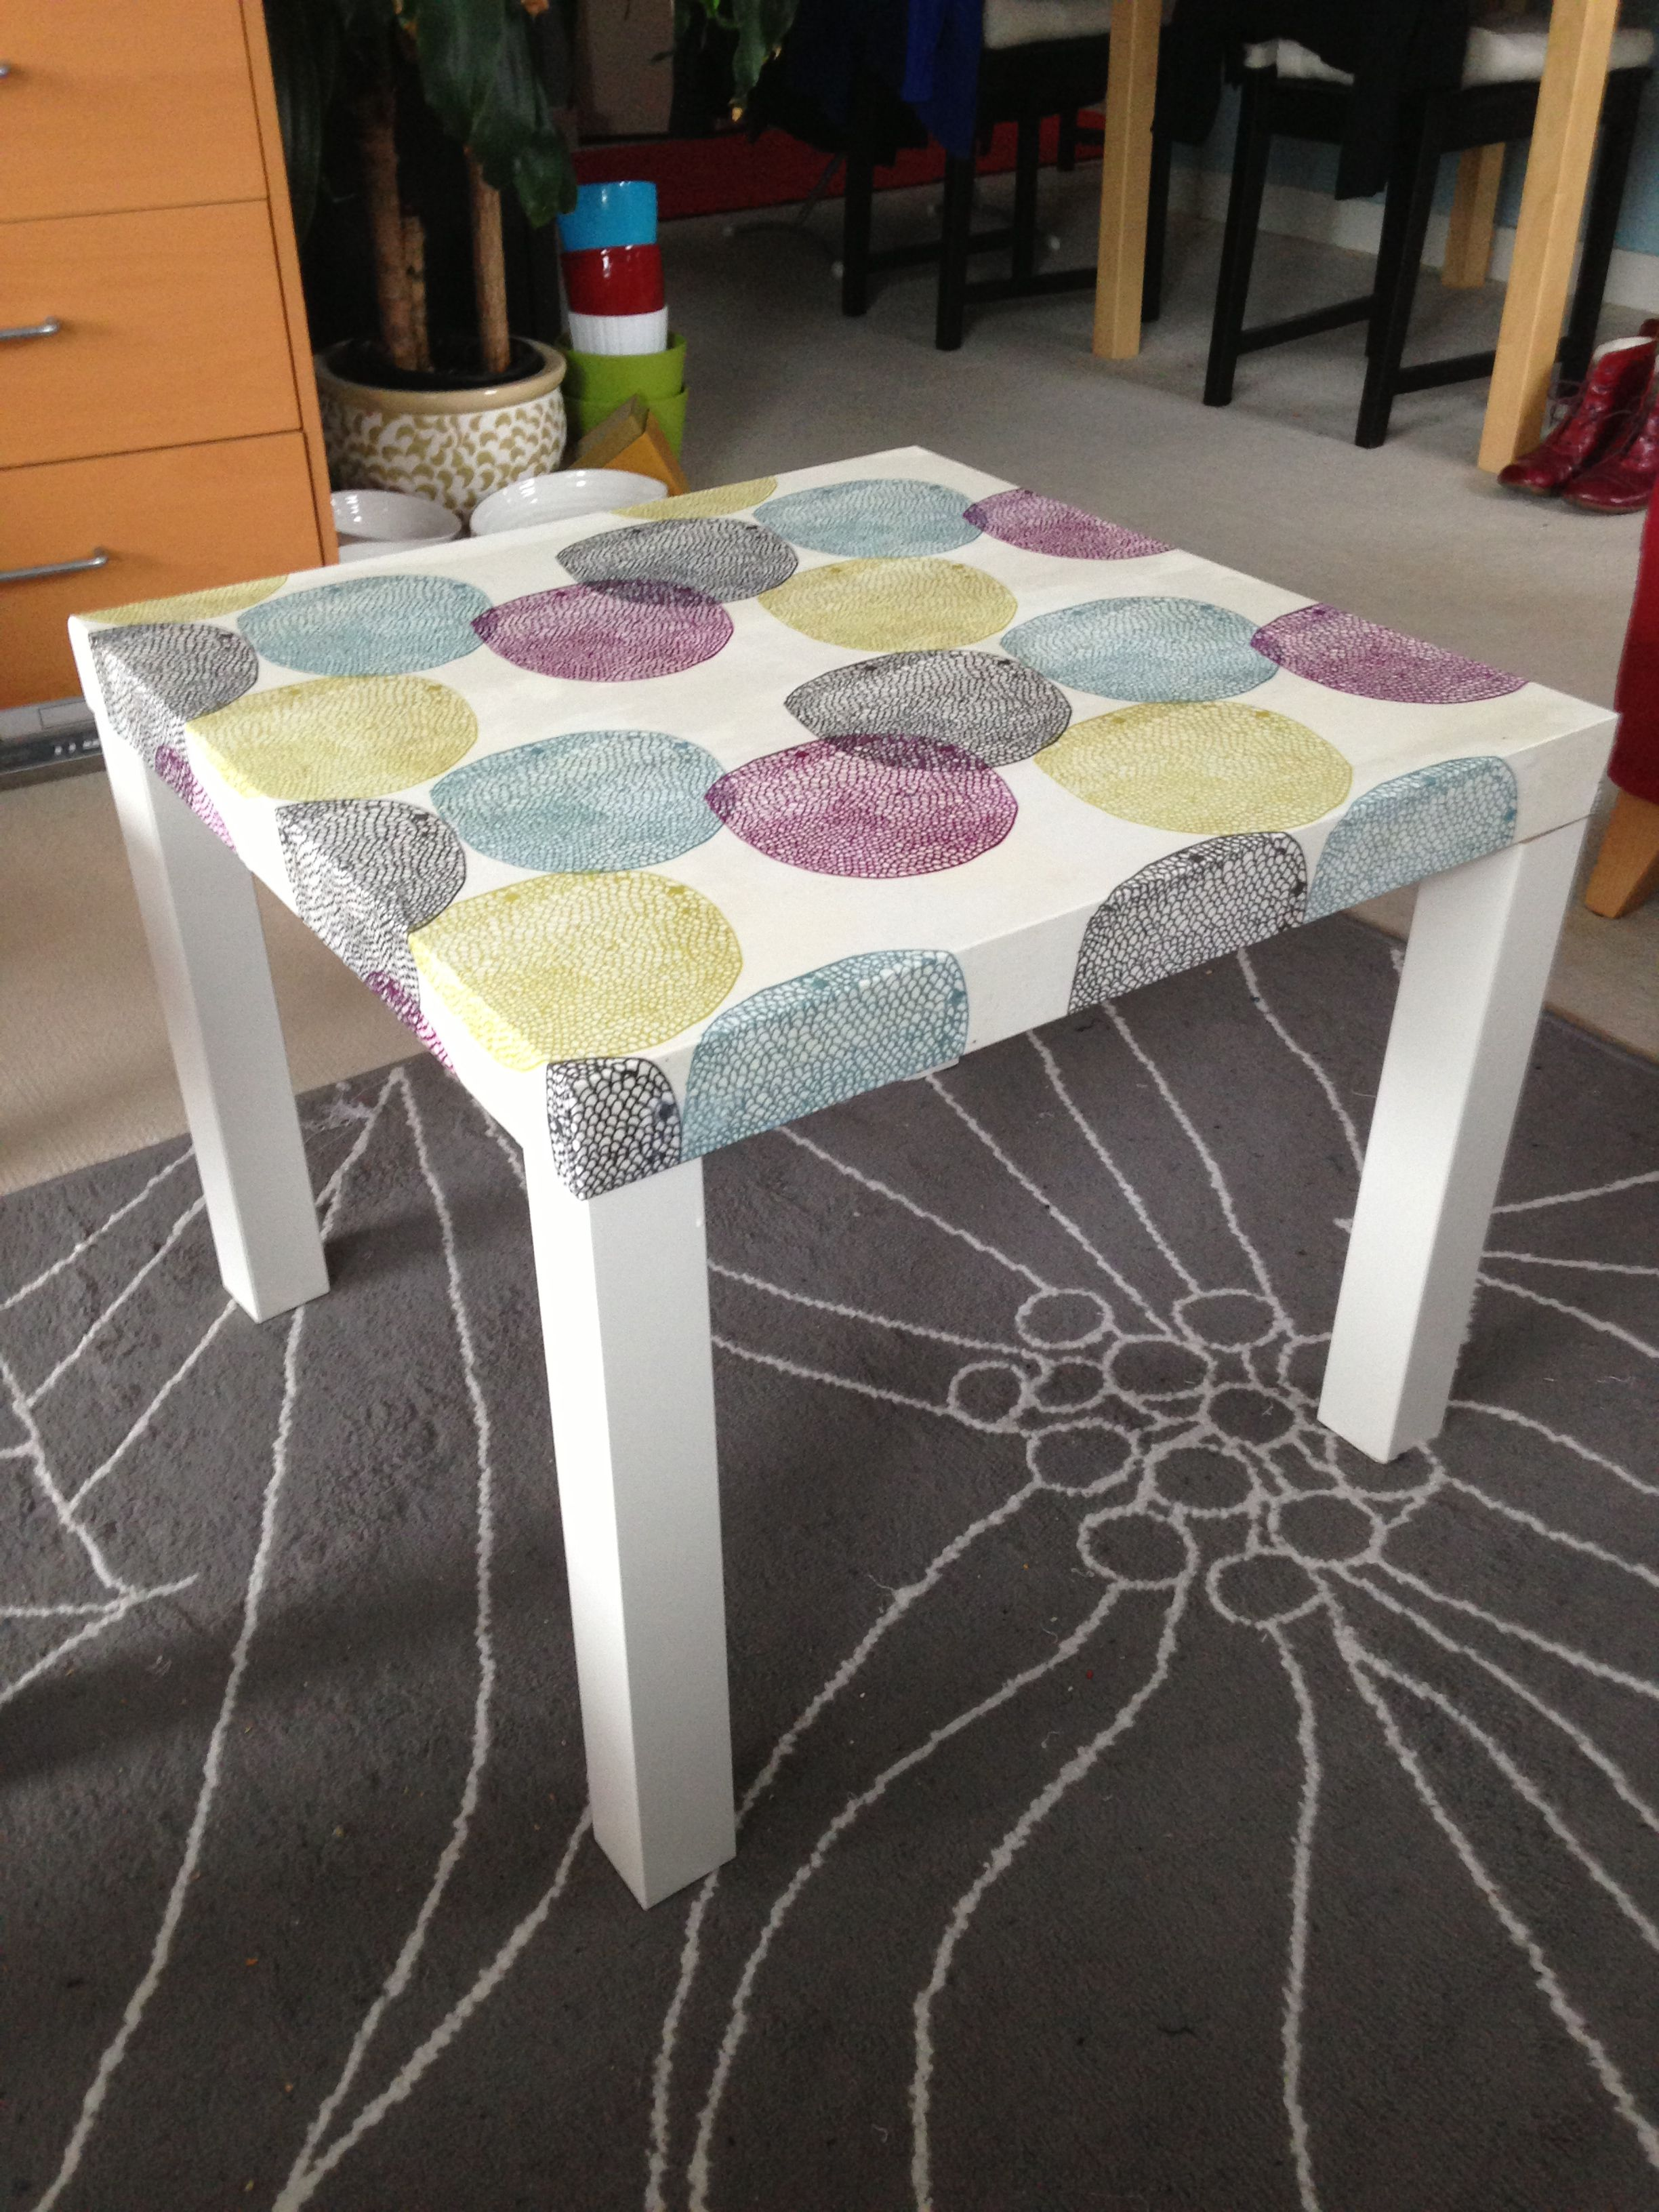 Customiser Table Lack Ikea Lack Table Hack Used A Duvet Cover And Attached It To The